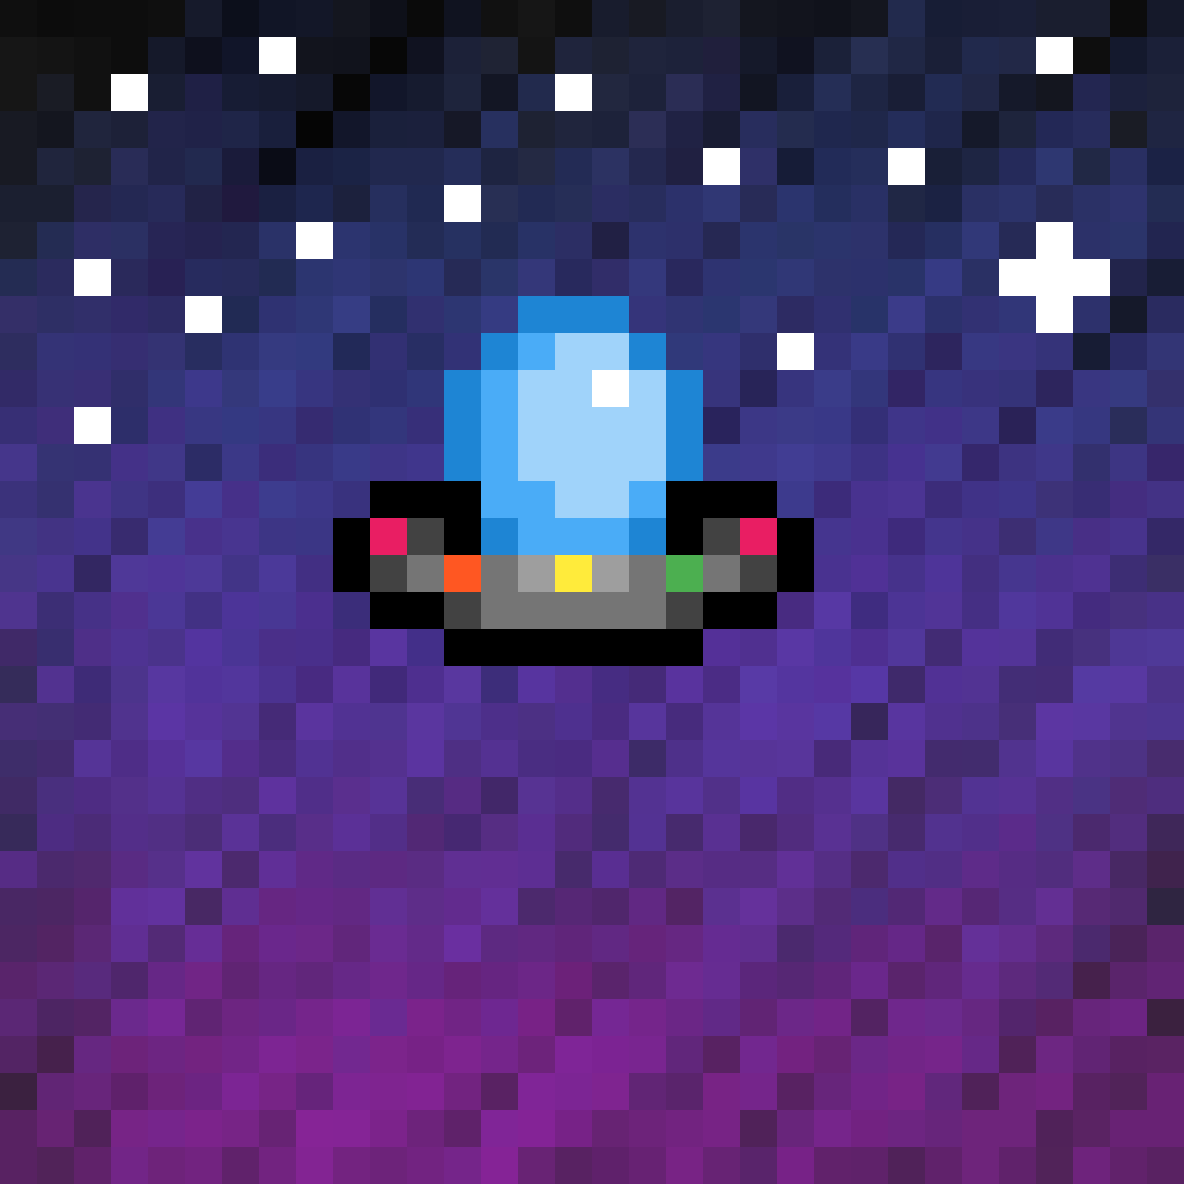 Flying saucer by MyaApplesauce